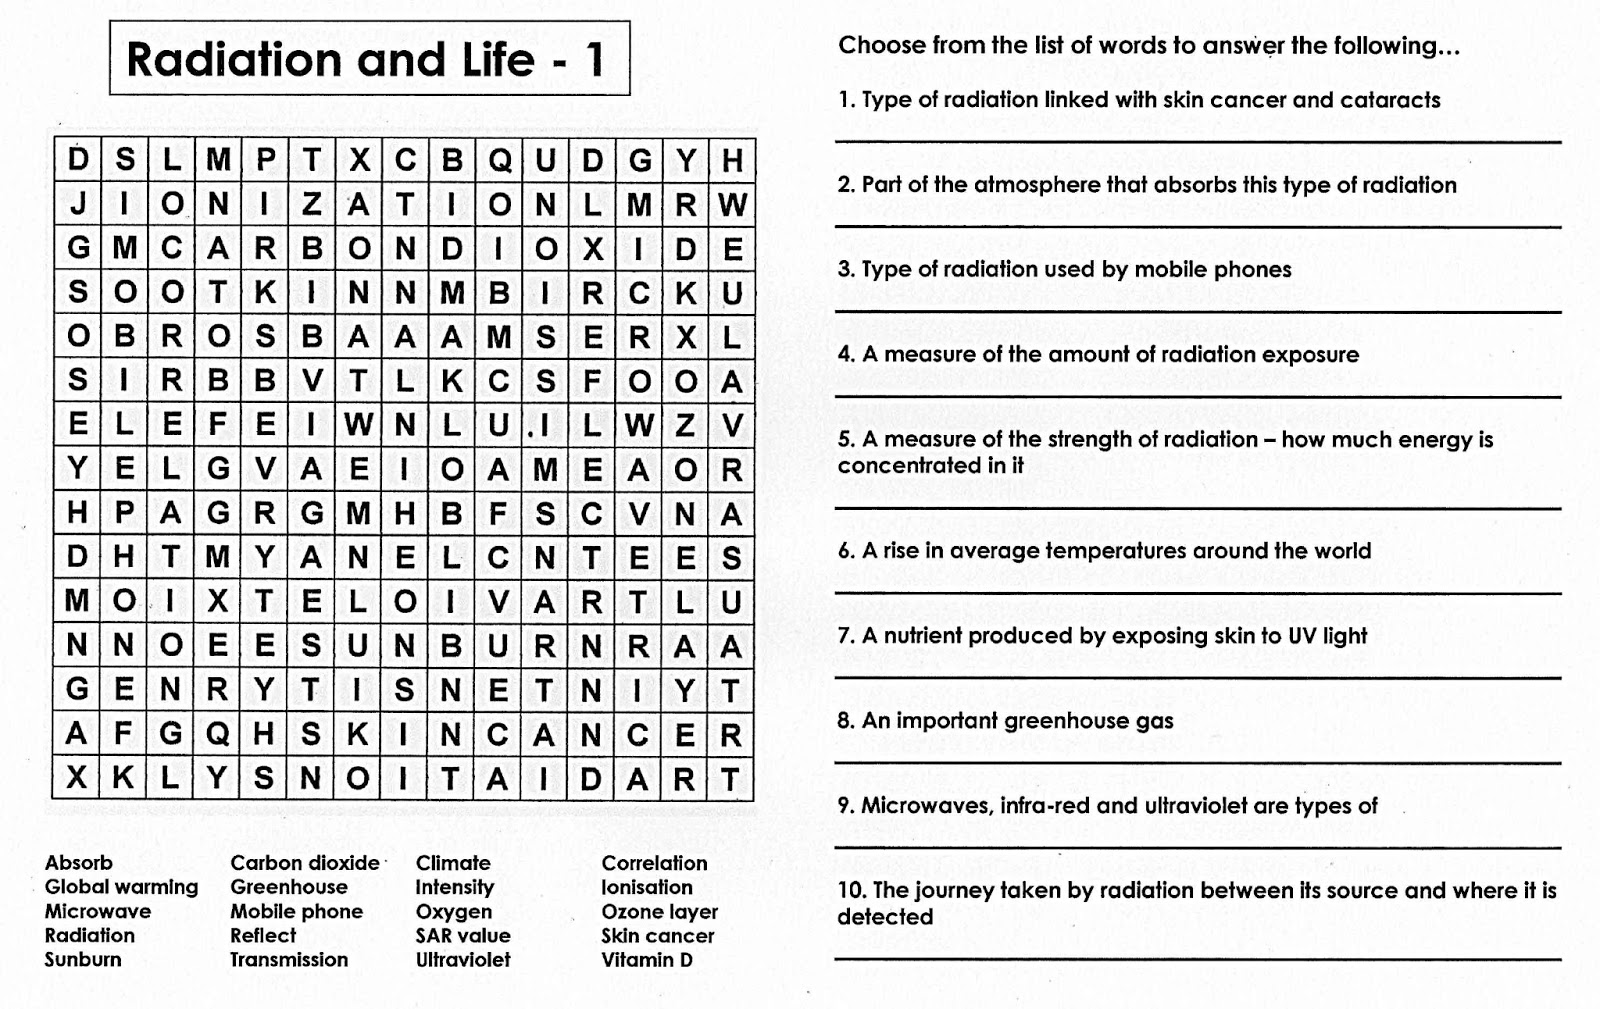 100 Free Science Worksheets Radiation Life A Quiz Wordsearch – Free Science Worksheets